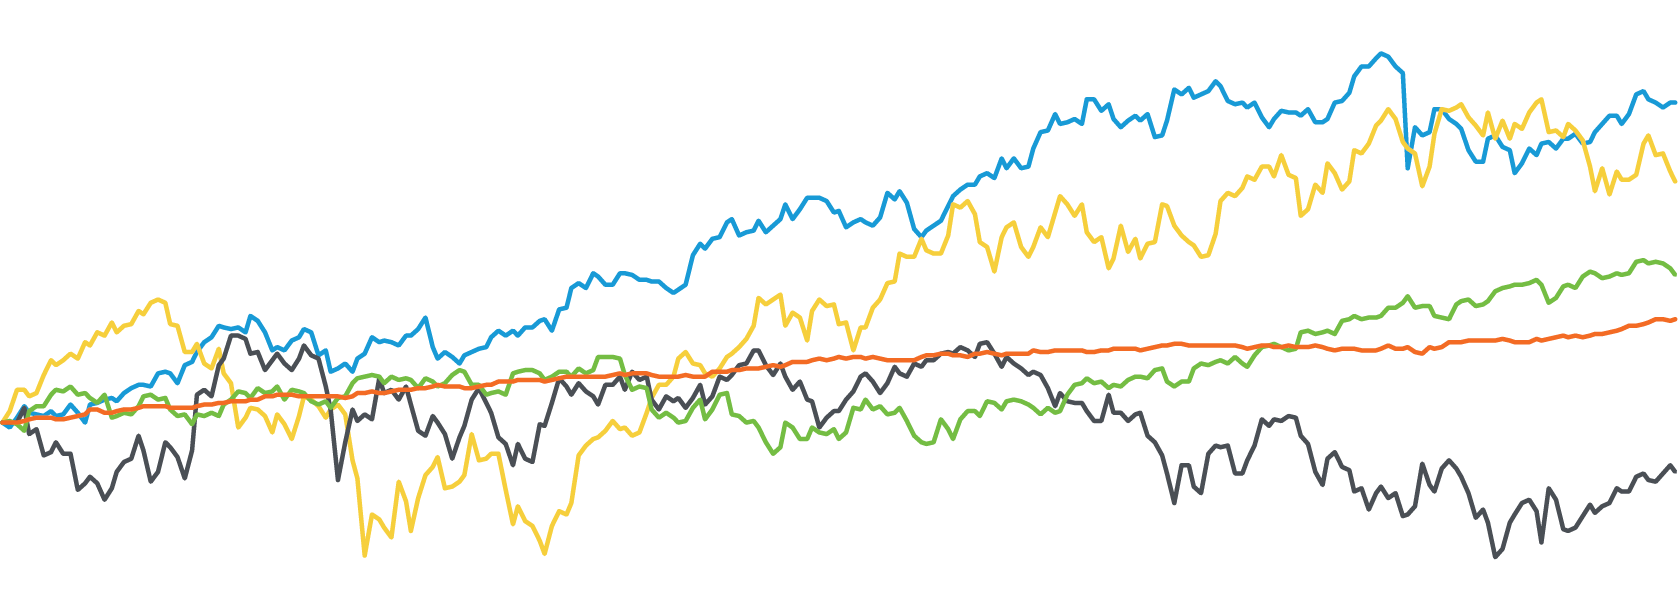 S&P 500 Index Performance Following Yield Curve Inversions